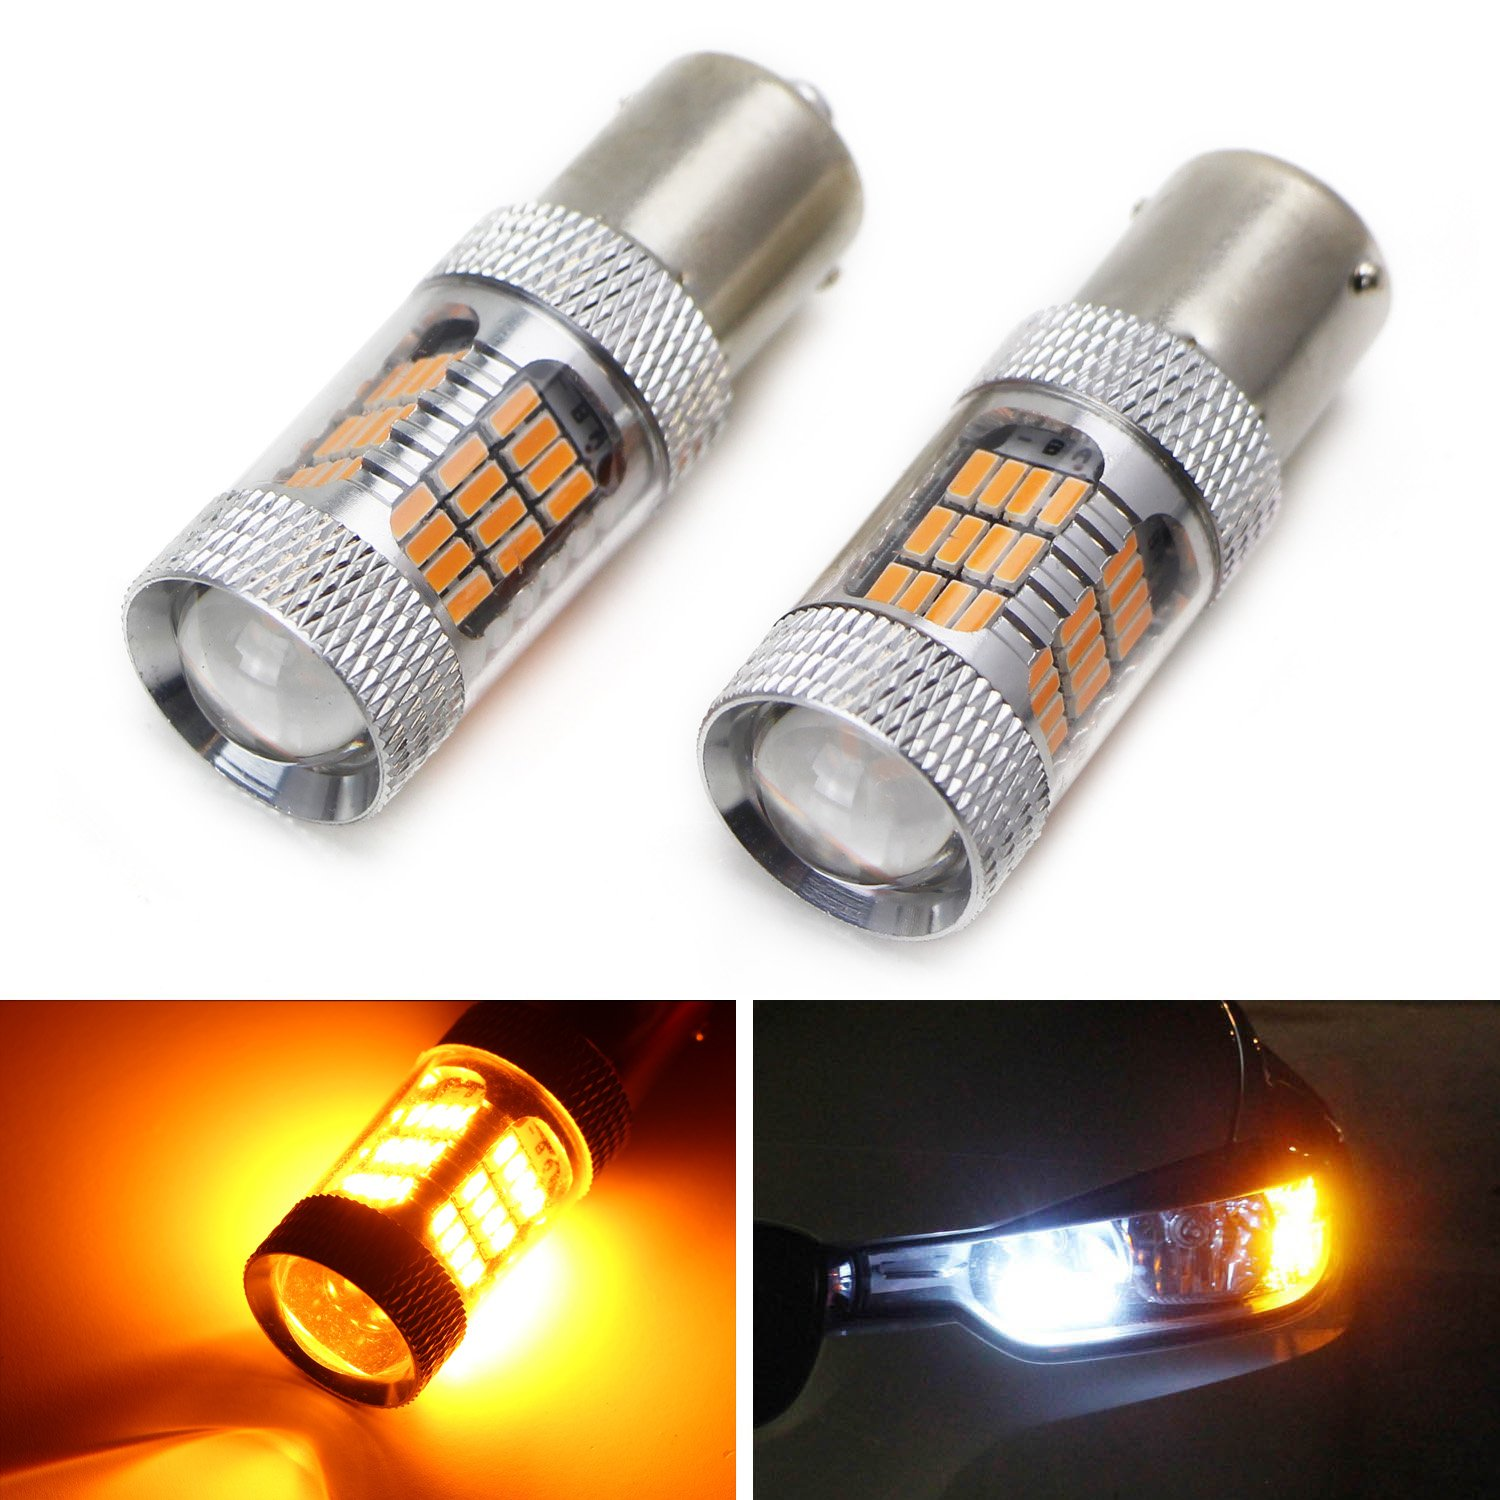 Ijdmtoy Amber Yellow 54 Smd 7507 Py21w Canbus Led 2x 1156 7506 P21w Ba15s 7527 Light Bulb Wire Wiring Harness Socket Replacement Bulbs For F22 F30 F32 2 3 4 Series Front Turn Signal Lights Automotive